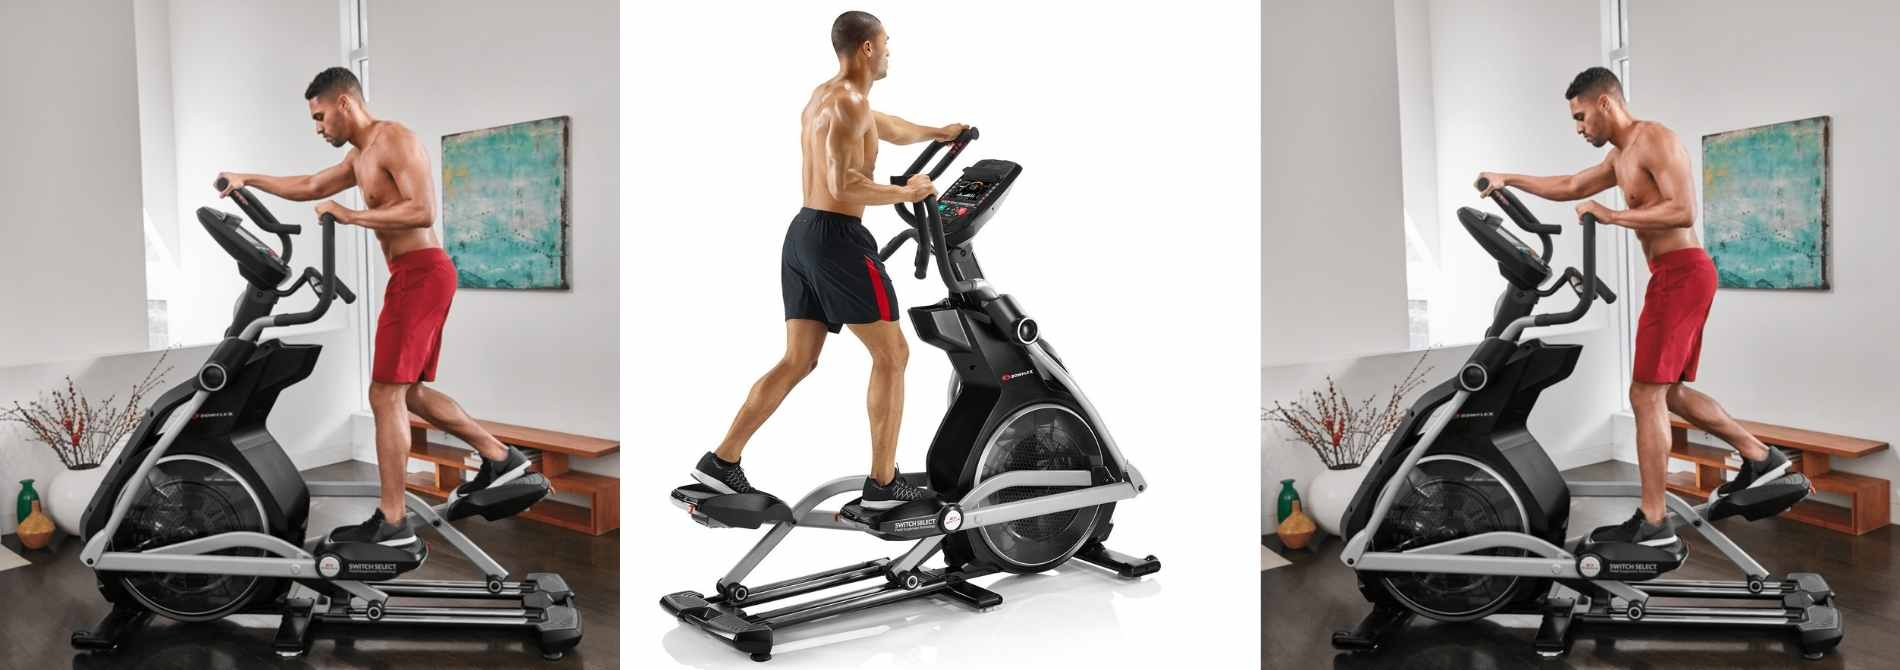 Bowflex BXE326 Elliptical Overview